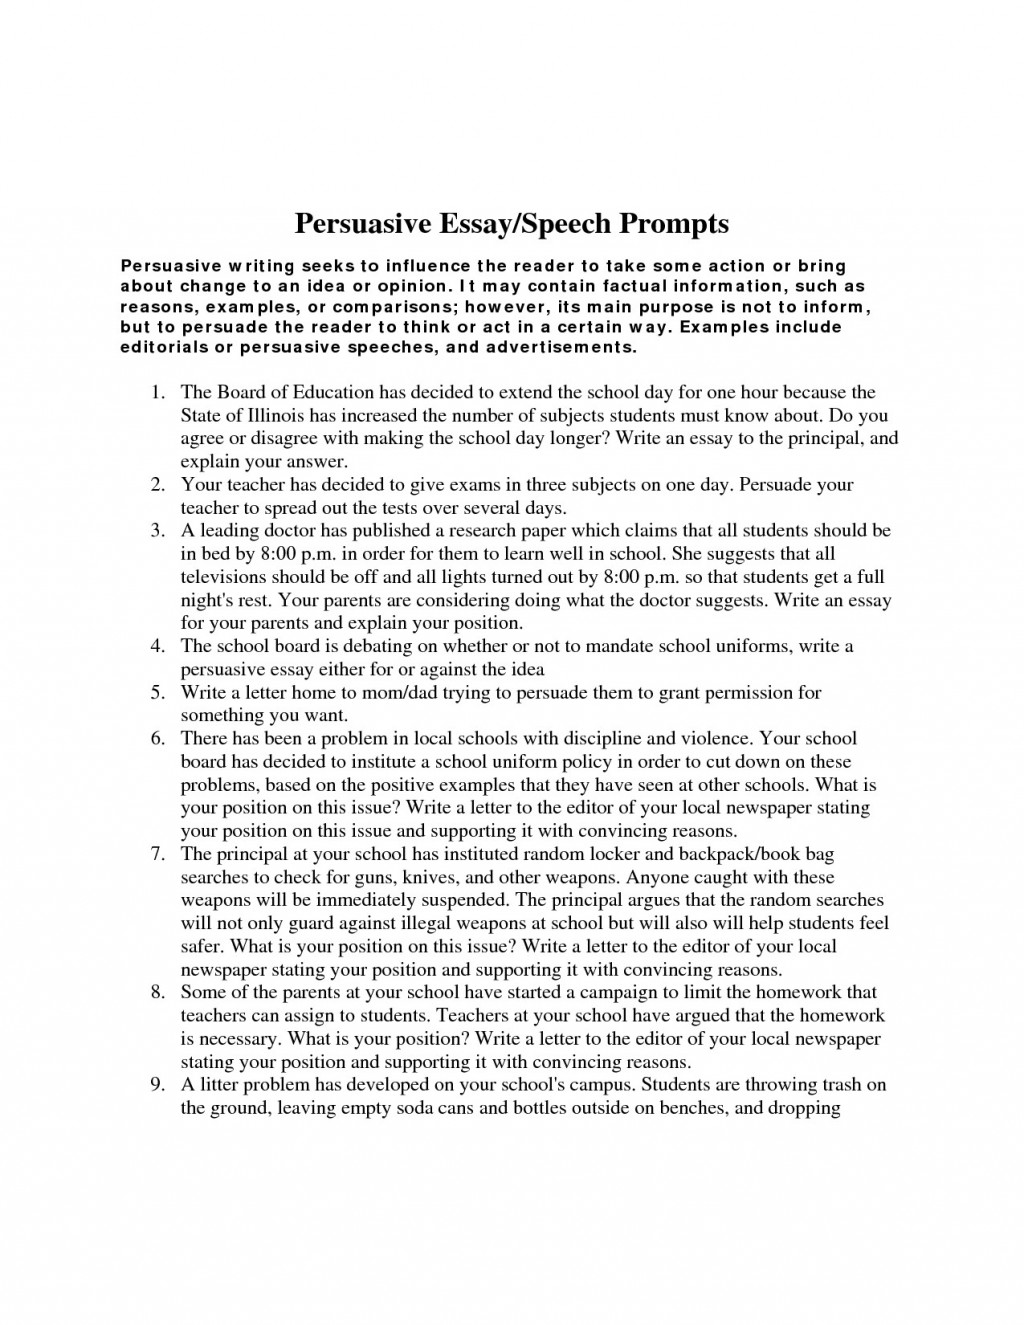 010 Persuasive Essay Prompts Argumentative Topics For Middle School Fantastic Easy High Large